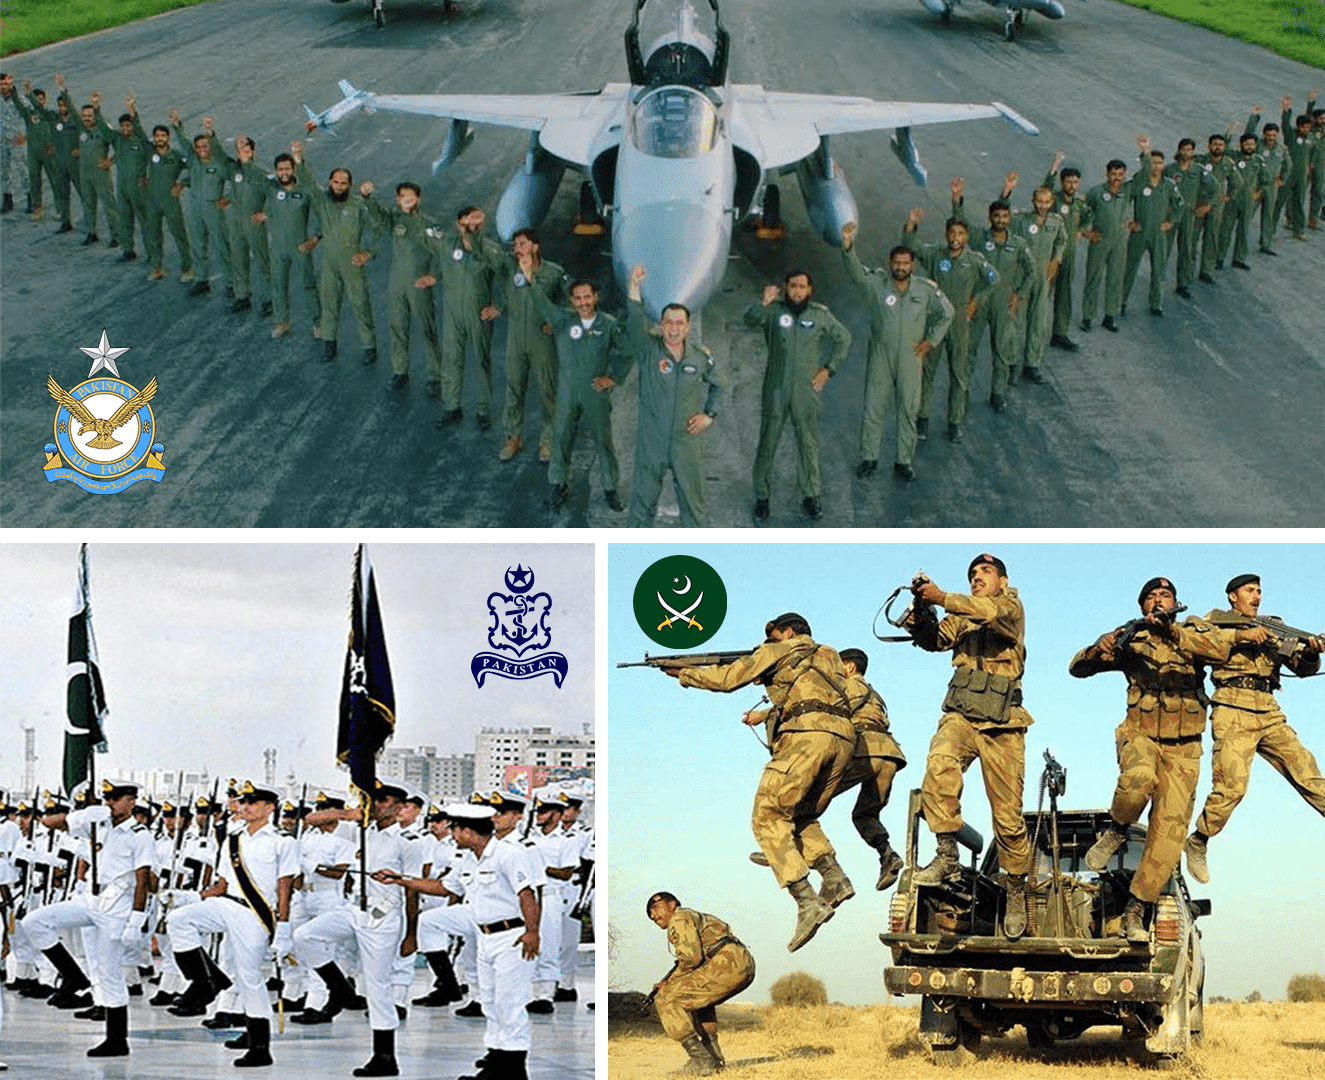 news, Pak army ranks, Pakistan army ranks, Pak air force ranks, Pakistan air force ranks, Pak navy ranks, Pakistan navy ranks, army insignia, Pakistan Military Ranks, Ranks of Pakistan Army, pakistan army salary, pakistan navy salary, pakistan airforce salary, pak army salary, pakistan army vs indian army